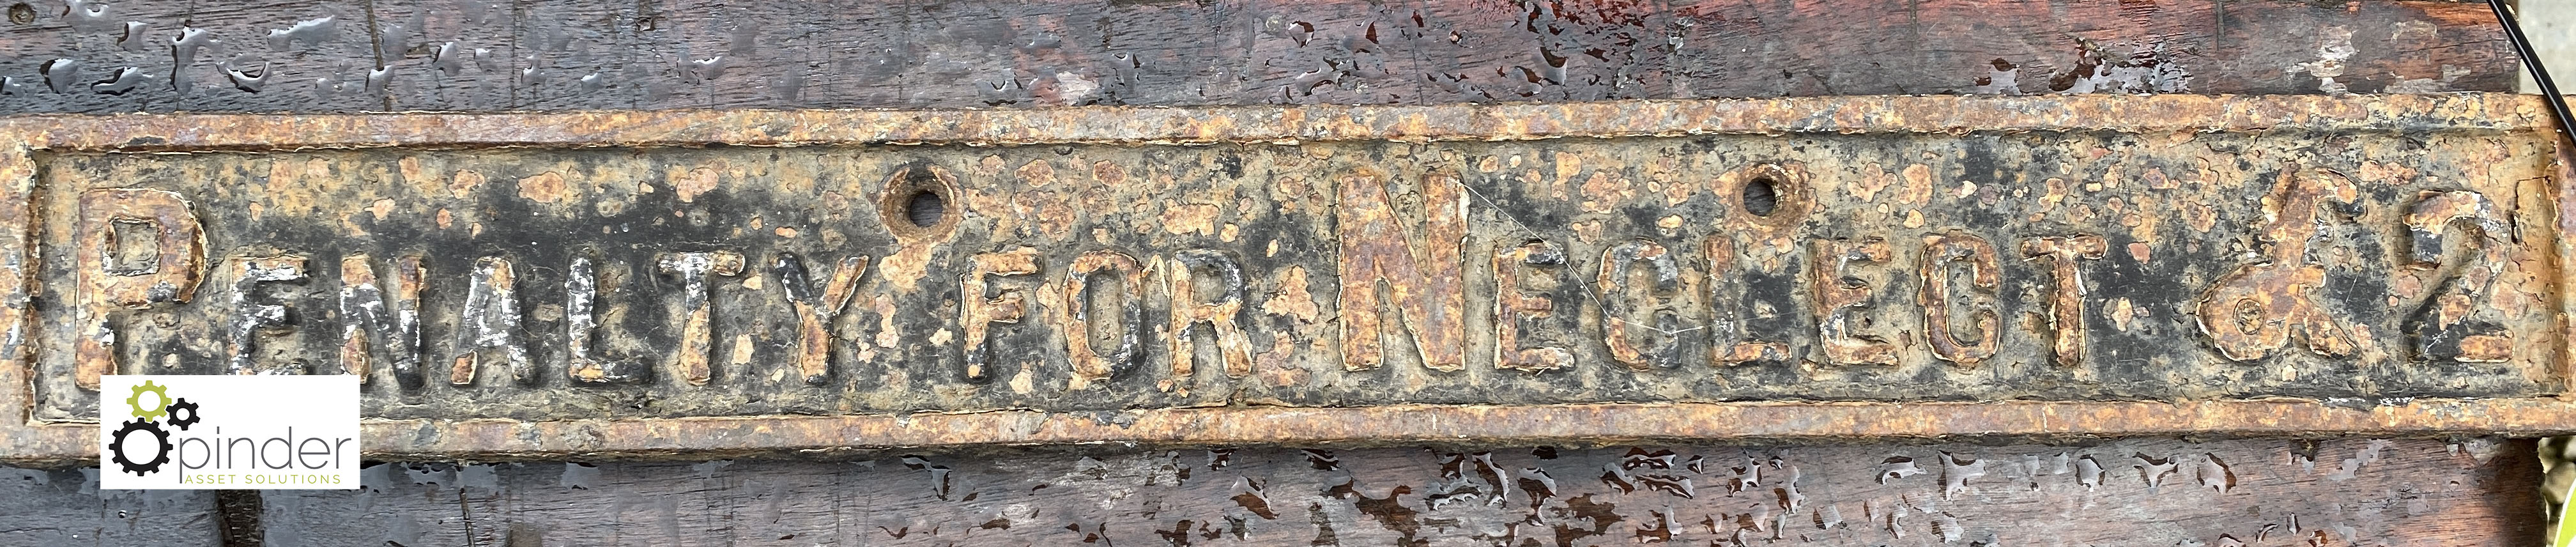 Cast iron Sign 'Penalty for Neglect £2', 500mm x 65mm (LOCATION: Todwick, Sheffield) - Image 2 of 2